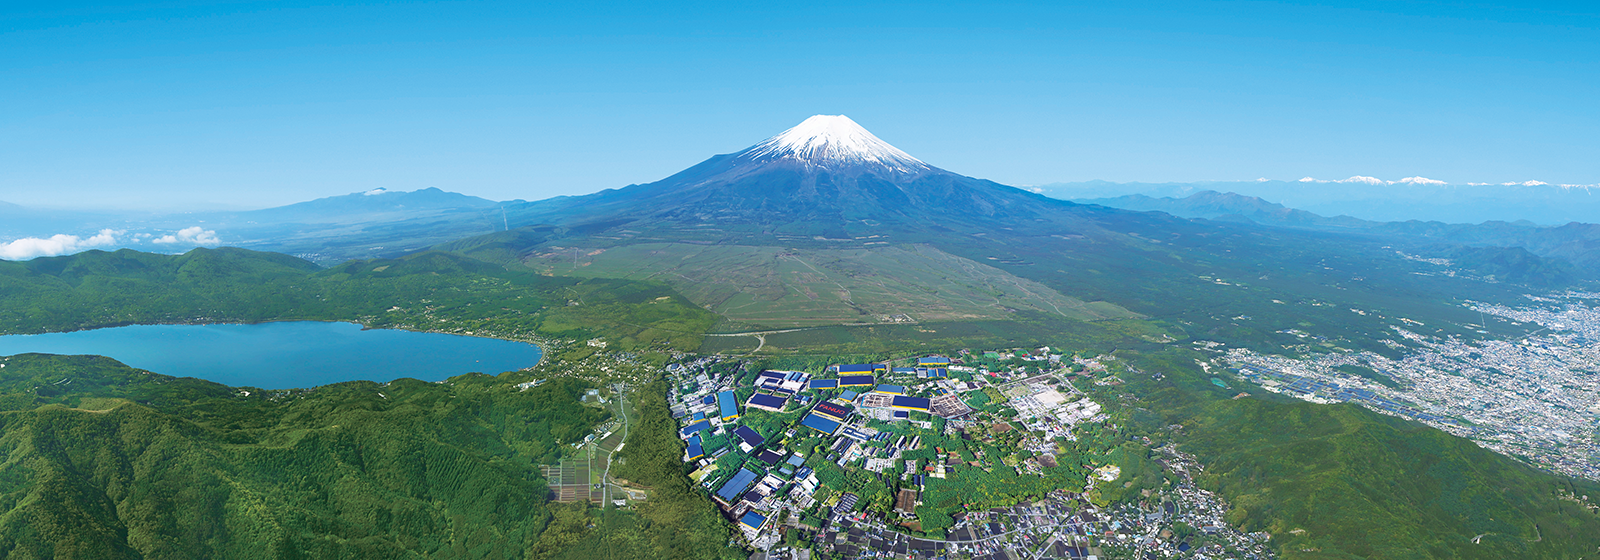 Fanuc City near by Mount Fuji